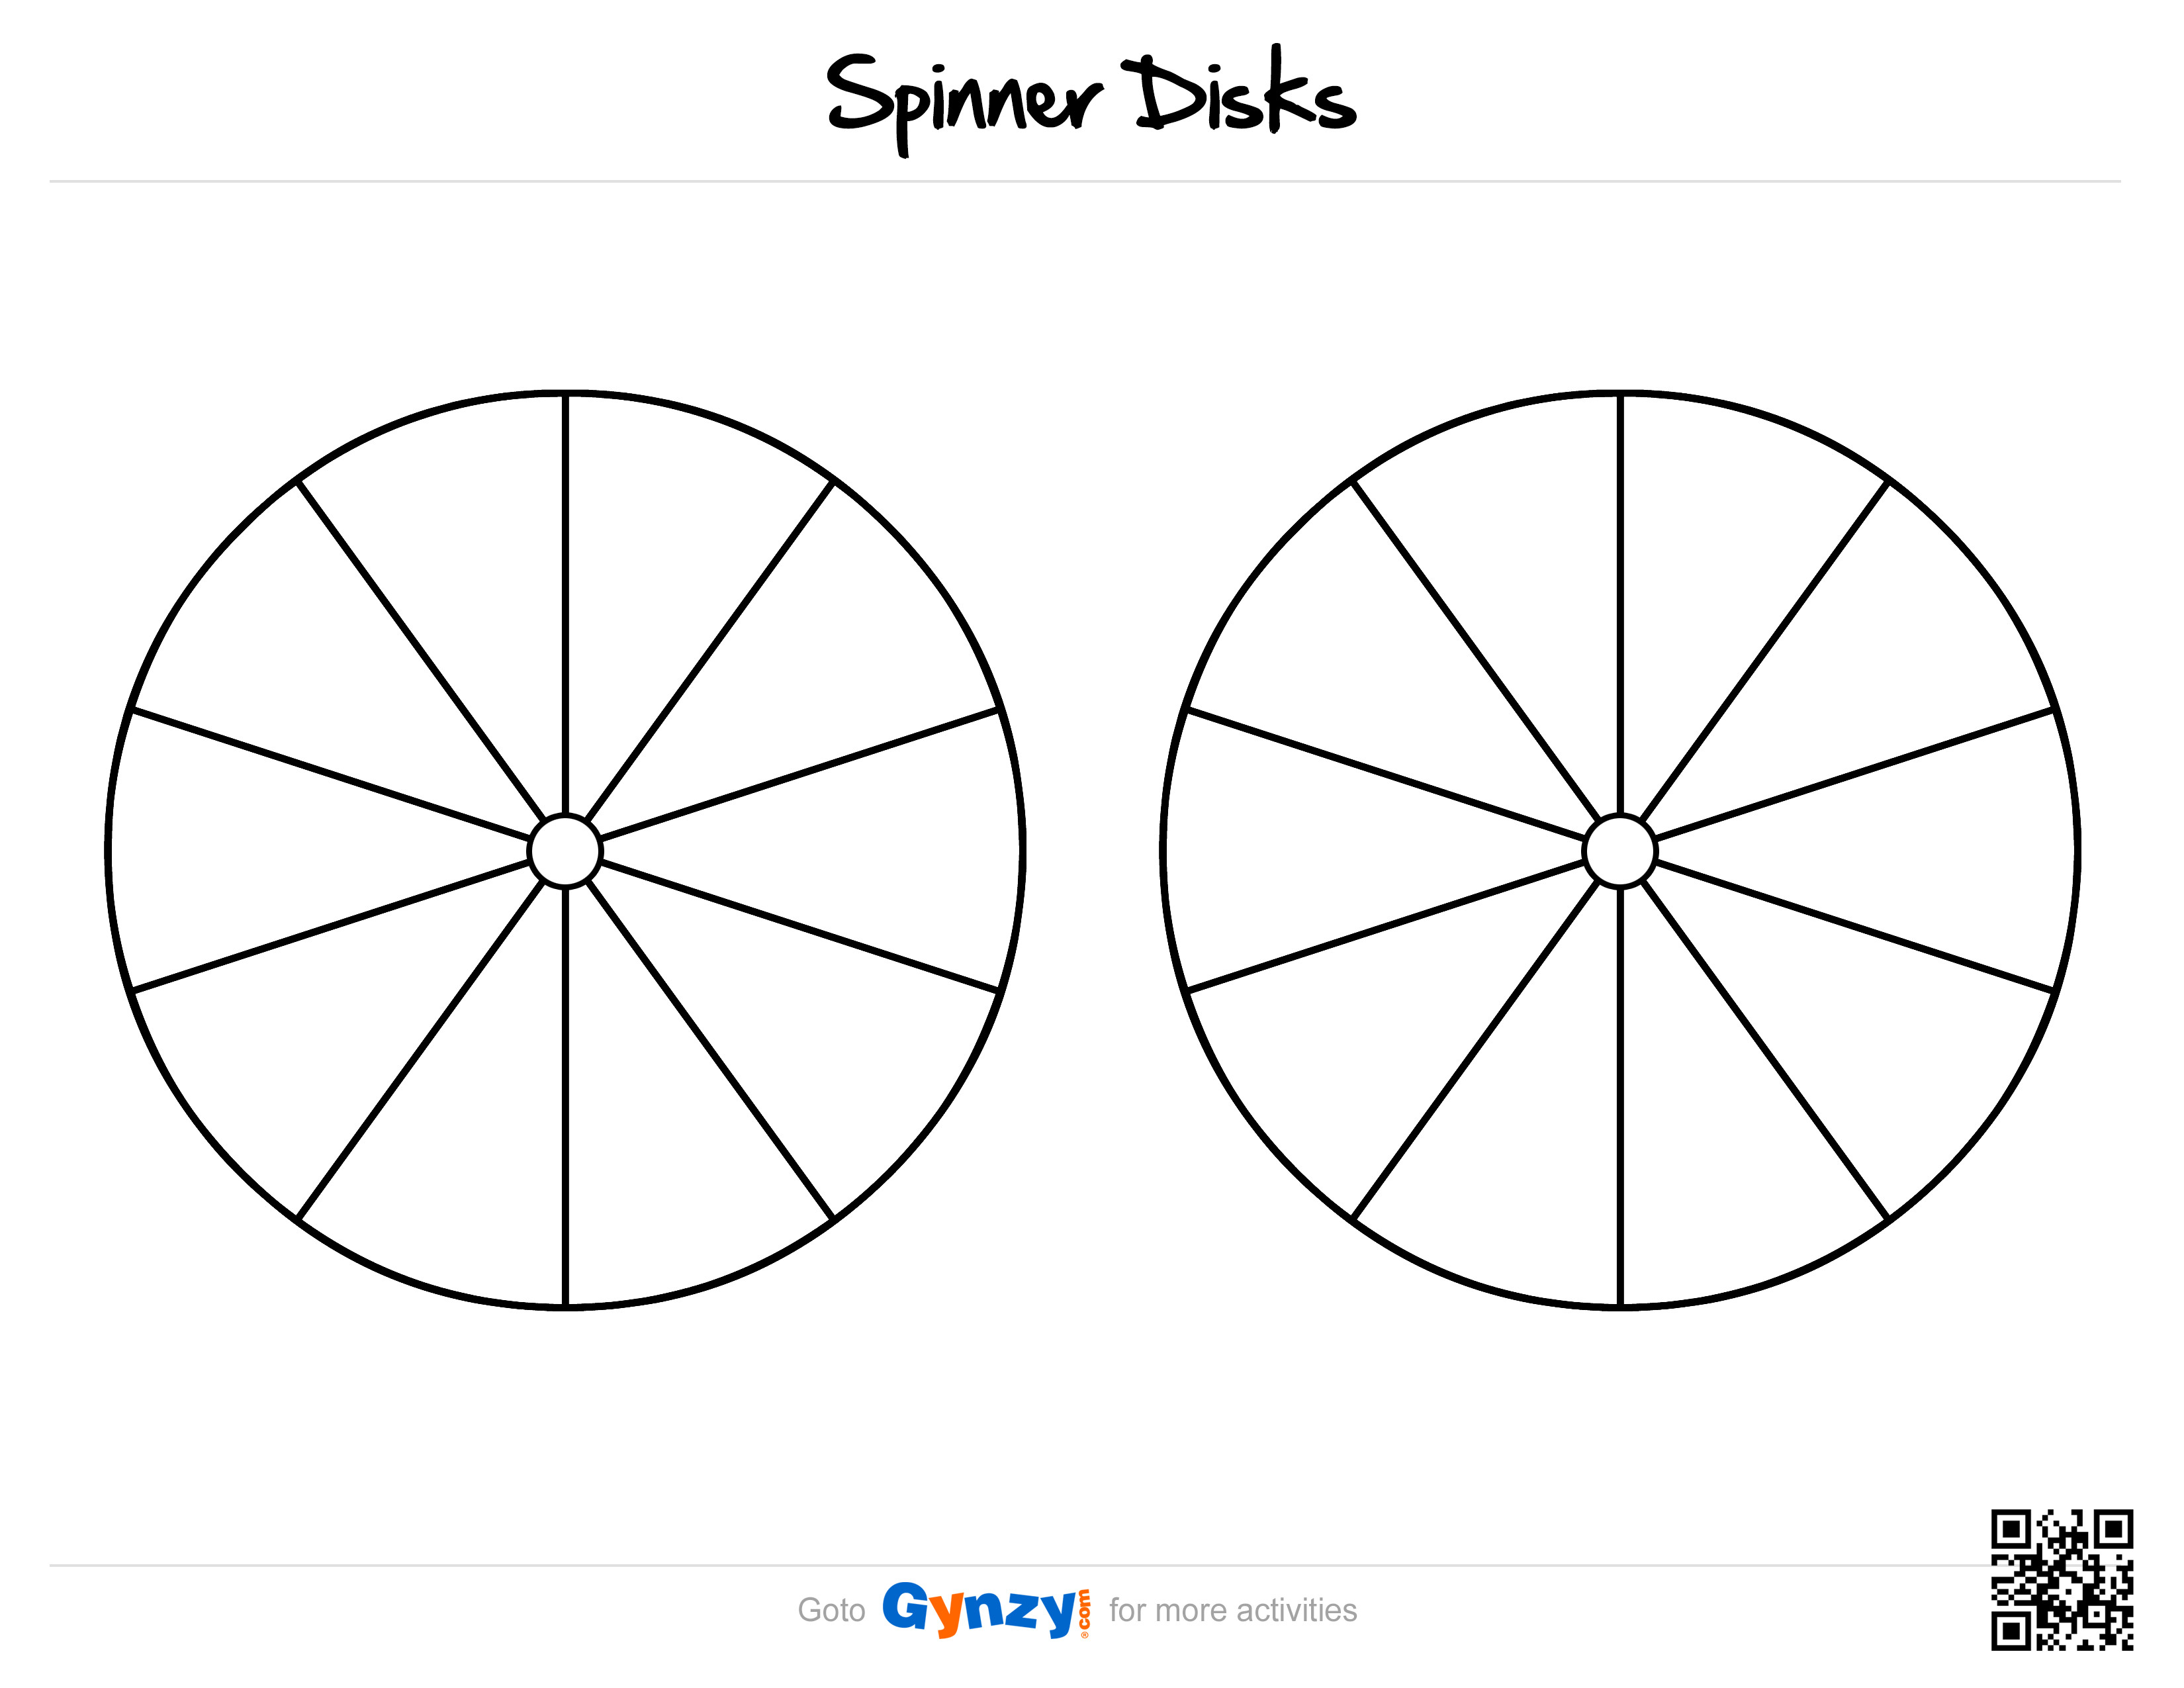 Blank Spinner Template Pin by Elizabeth Carmichael On Fitkids⛹ after School